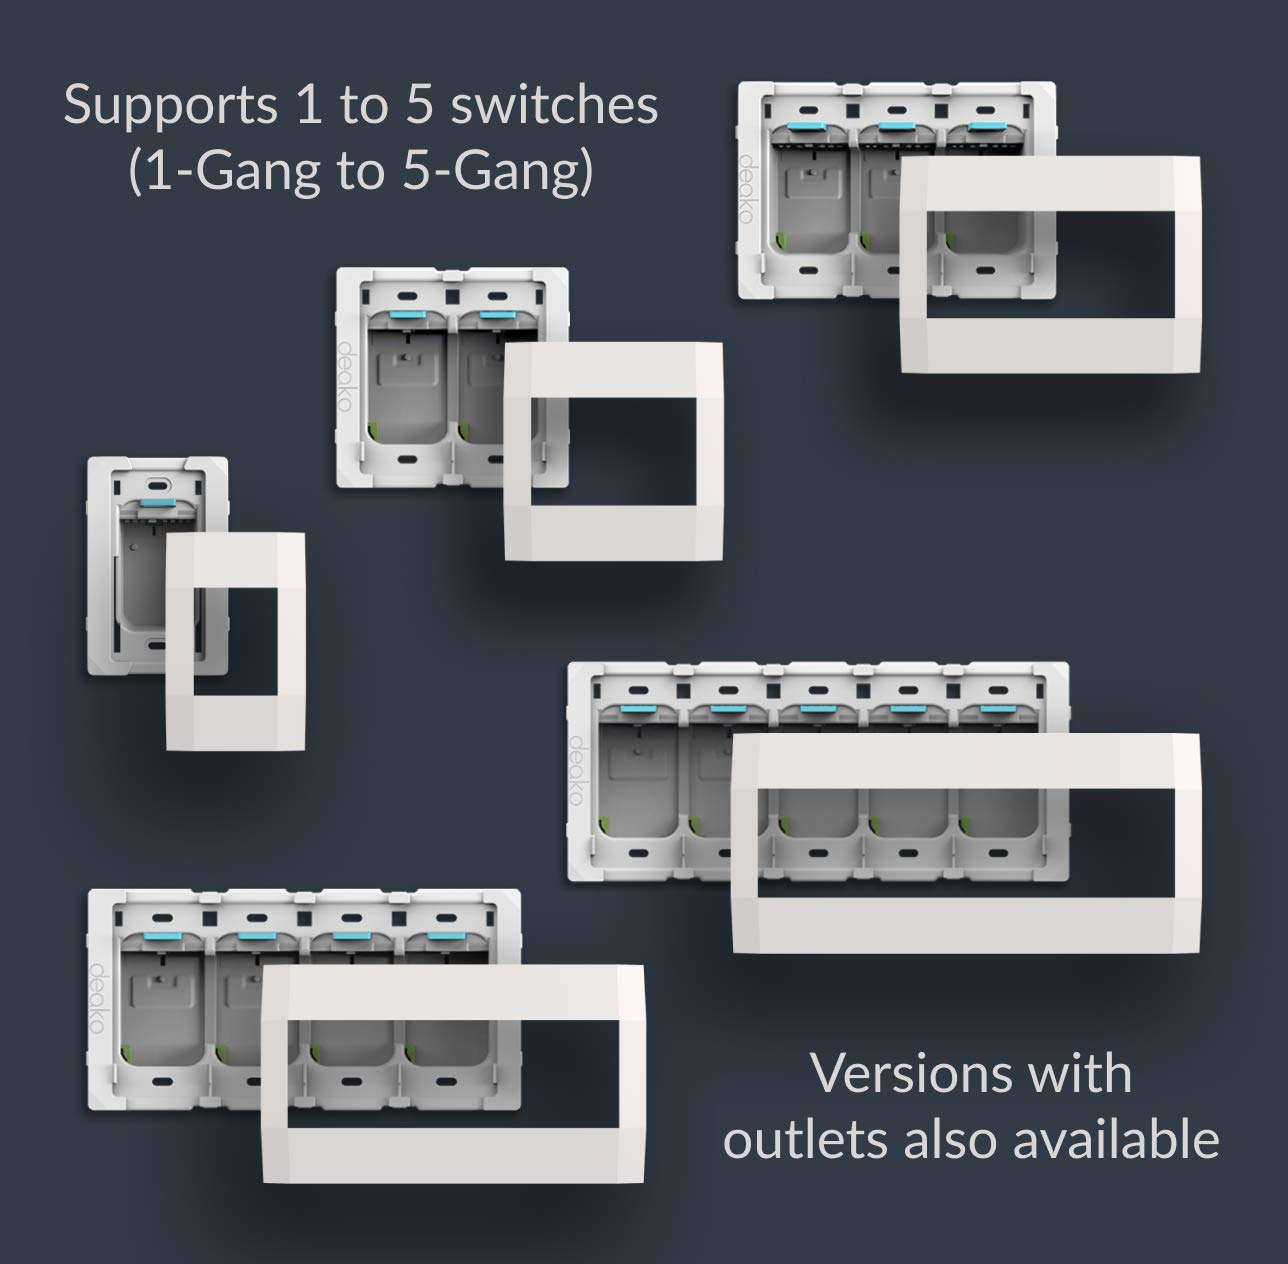 Deako Smart Dimmer for the Deako Lighting System. Bluetooth Mesh Dimmer Light Switch, Touchscreen Display Scene Controller; Amazon Alexa, Google Home, Voice Control DS-CDMB-WHWH-UCX